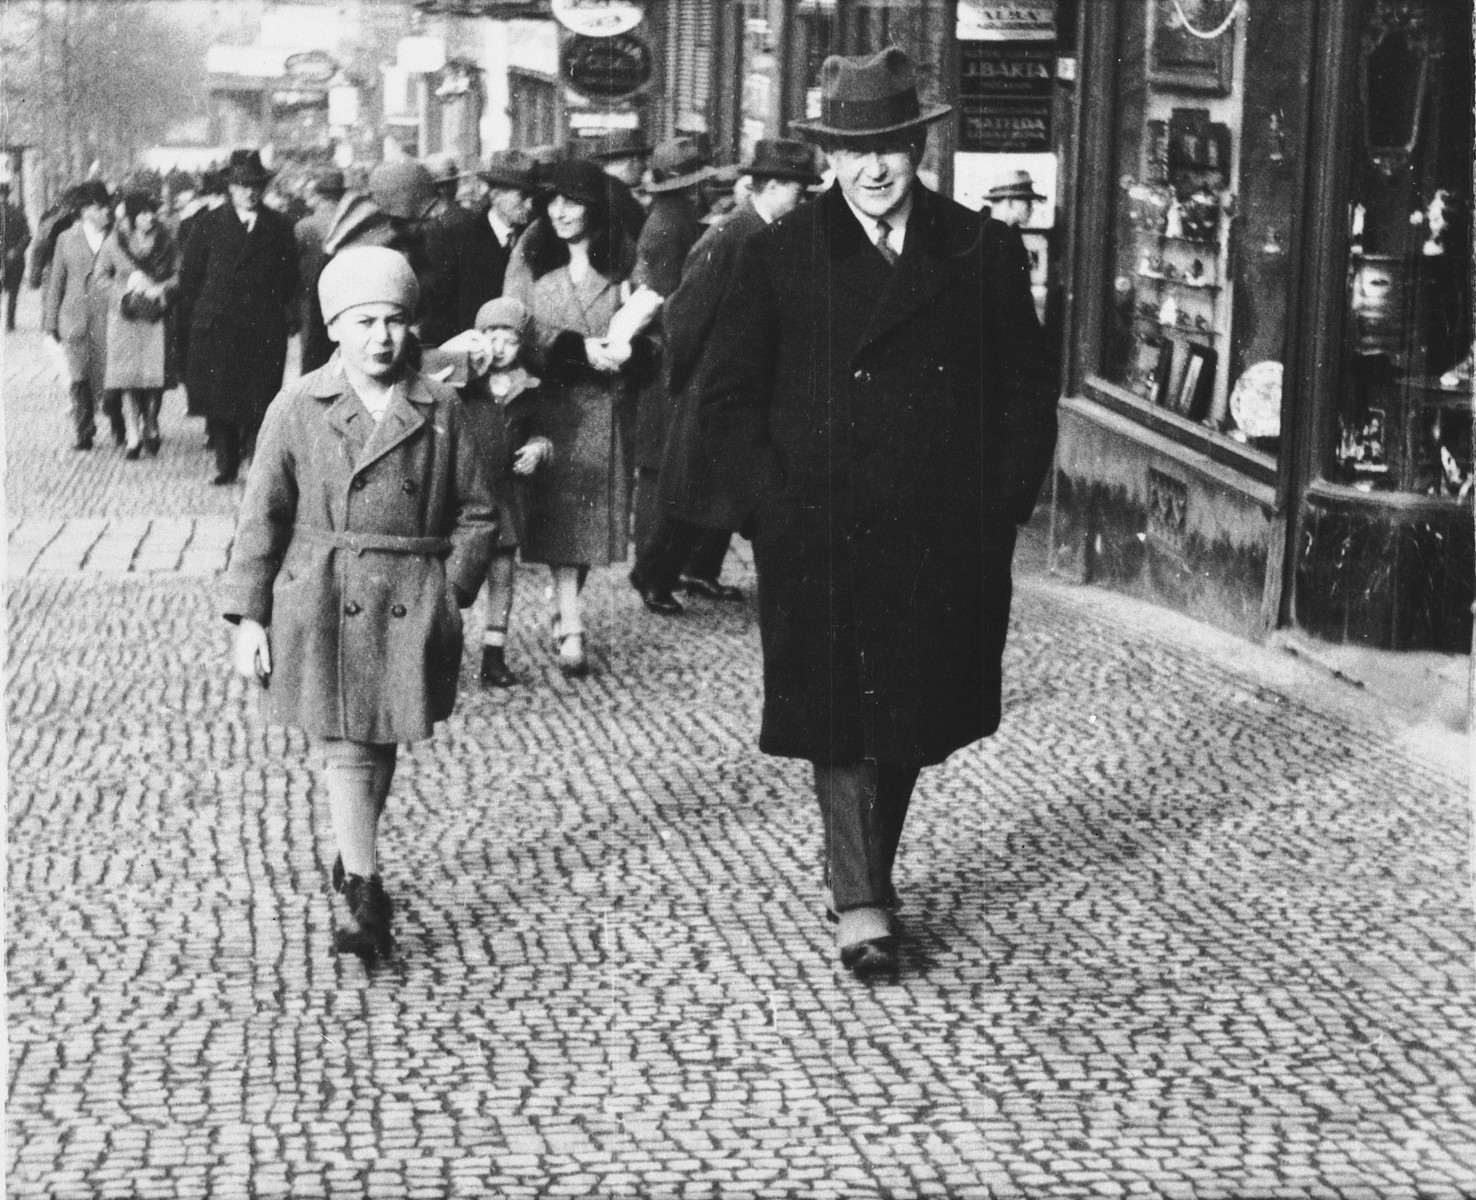 A Jewish father and son walk along a commercial street in Prague.  Pictured are Oskar and Jiri Fuchs.